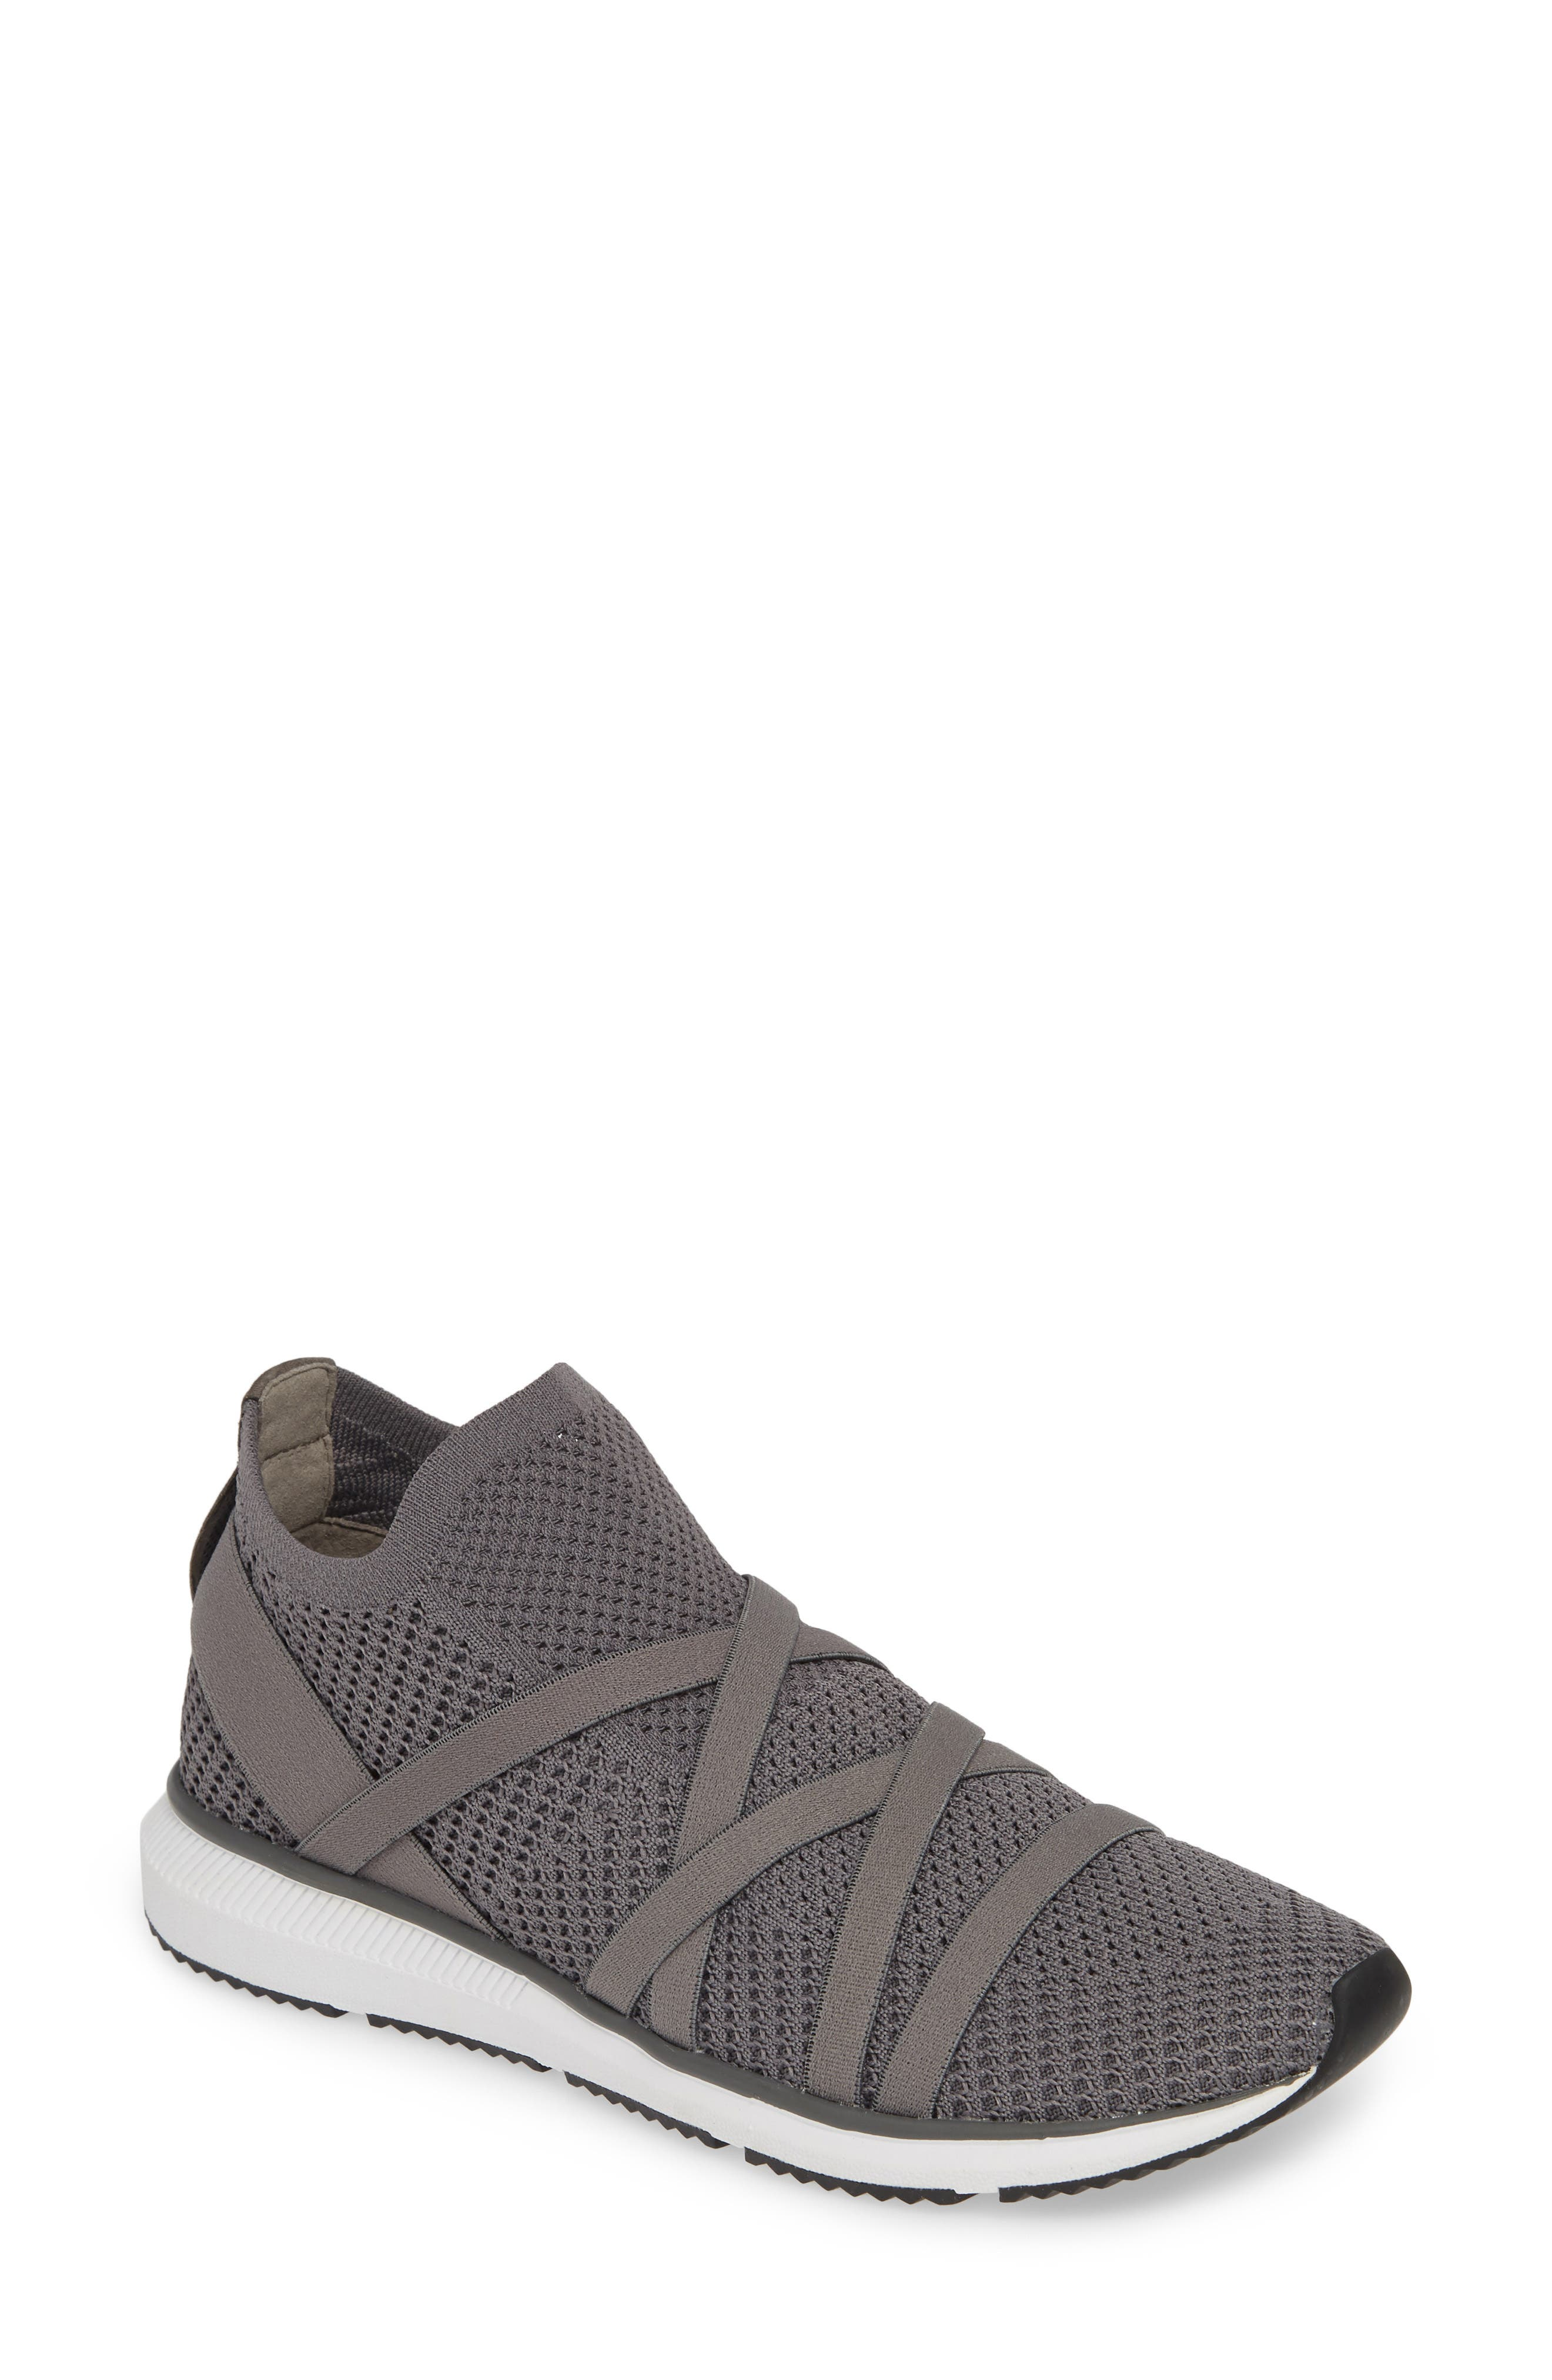 EILEEN FISHER,                             Xanady Woven Slip-On Sneaker,                             Main thumbnail 1, color,                             GRAPHITE FABRIC